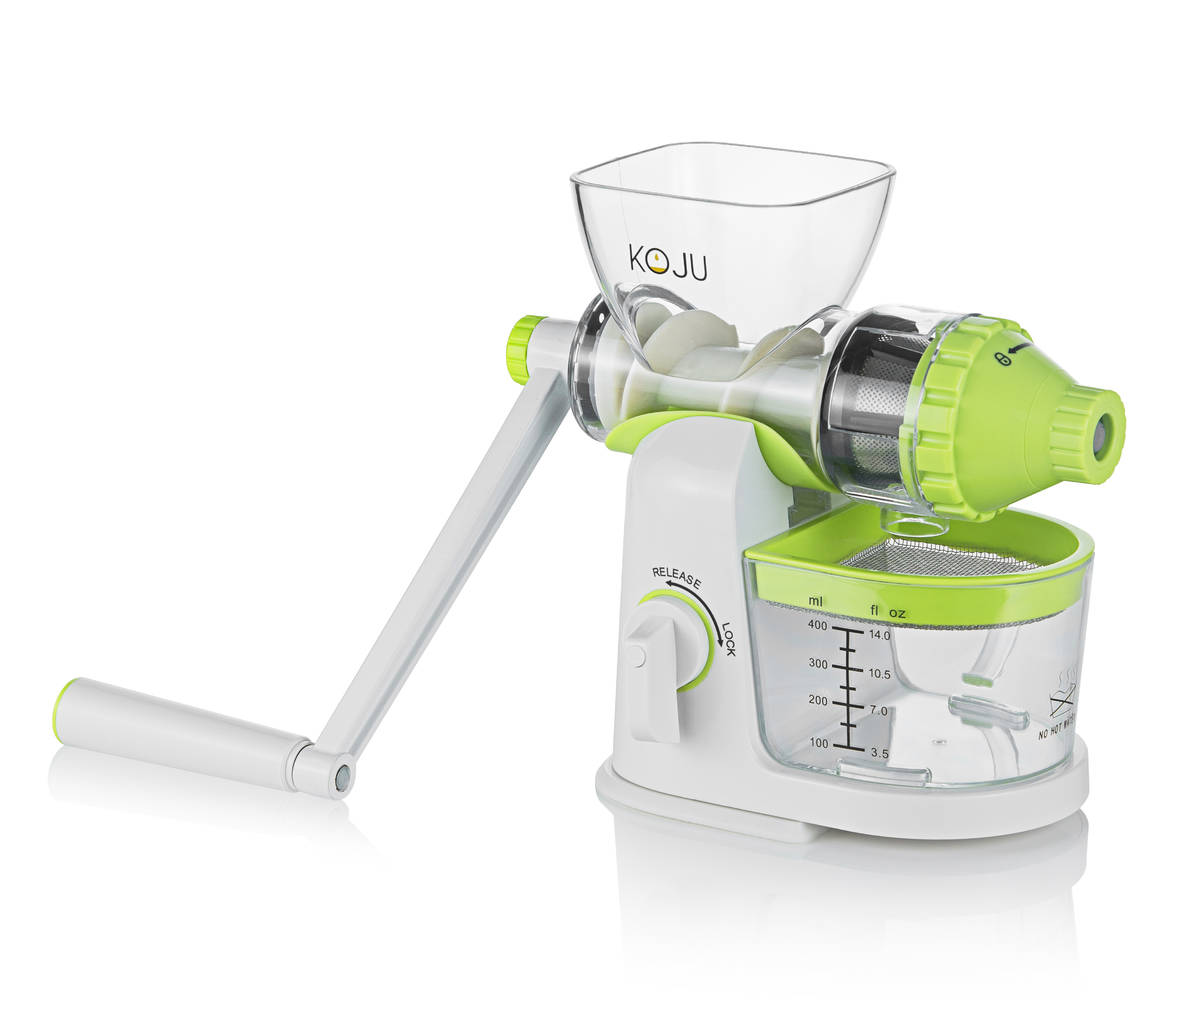 Koju manual juicer